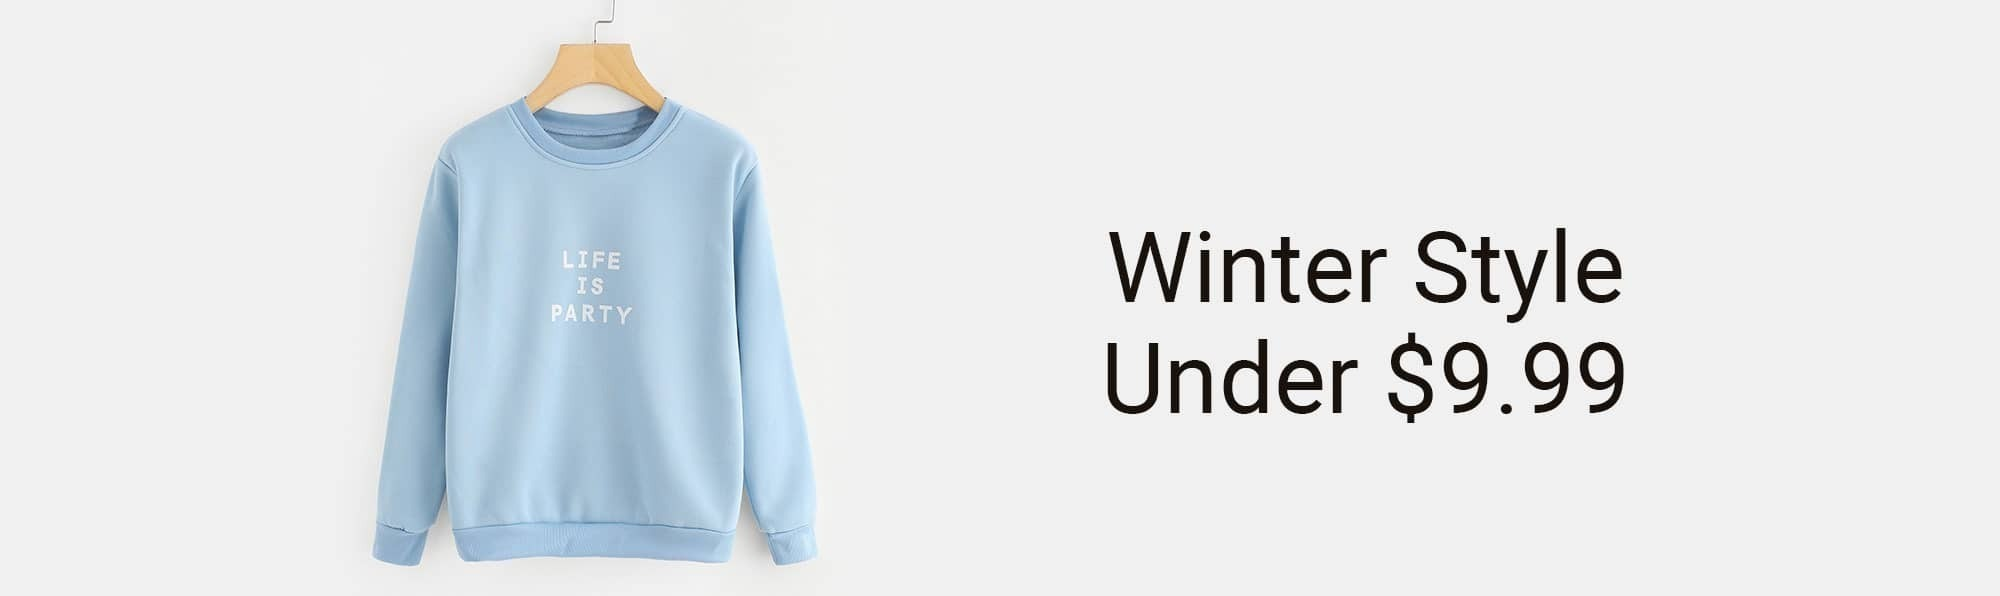 US WinterUnder9.99 20171204